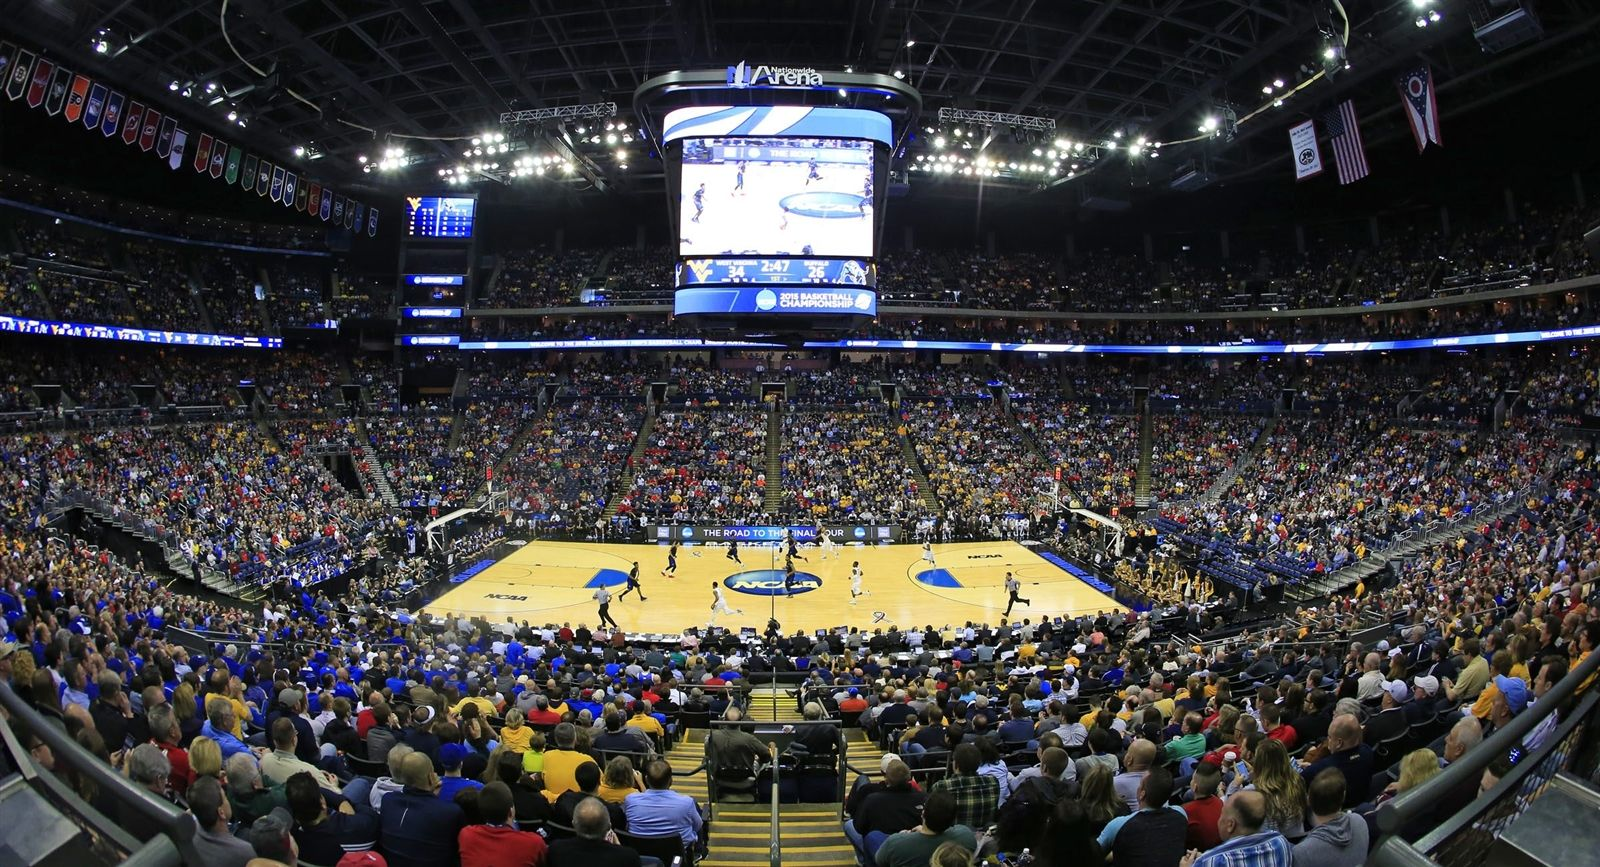 The University at Buffalo and West Virginia face off in the NCAA men's basketball tournament at Nationwide Arena in Columbus on March 20.